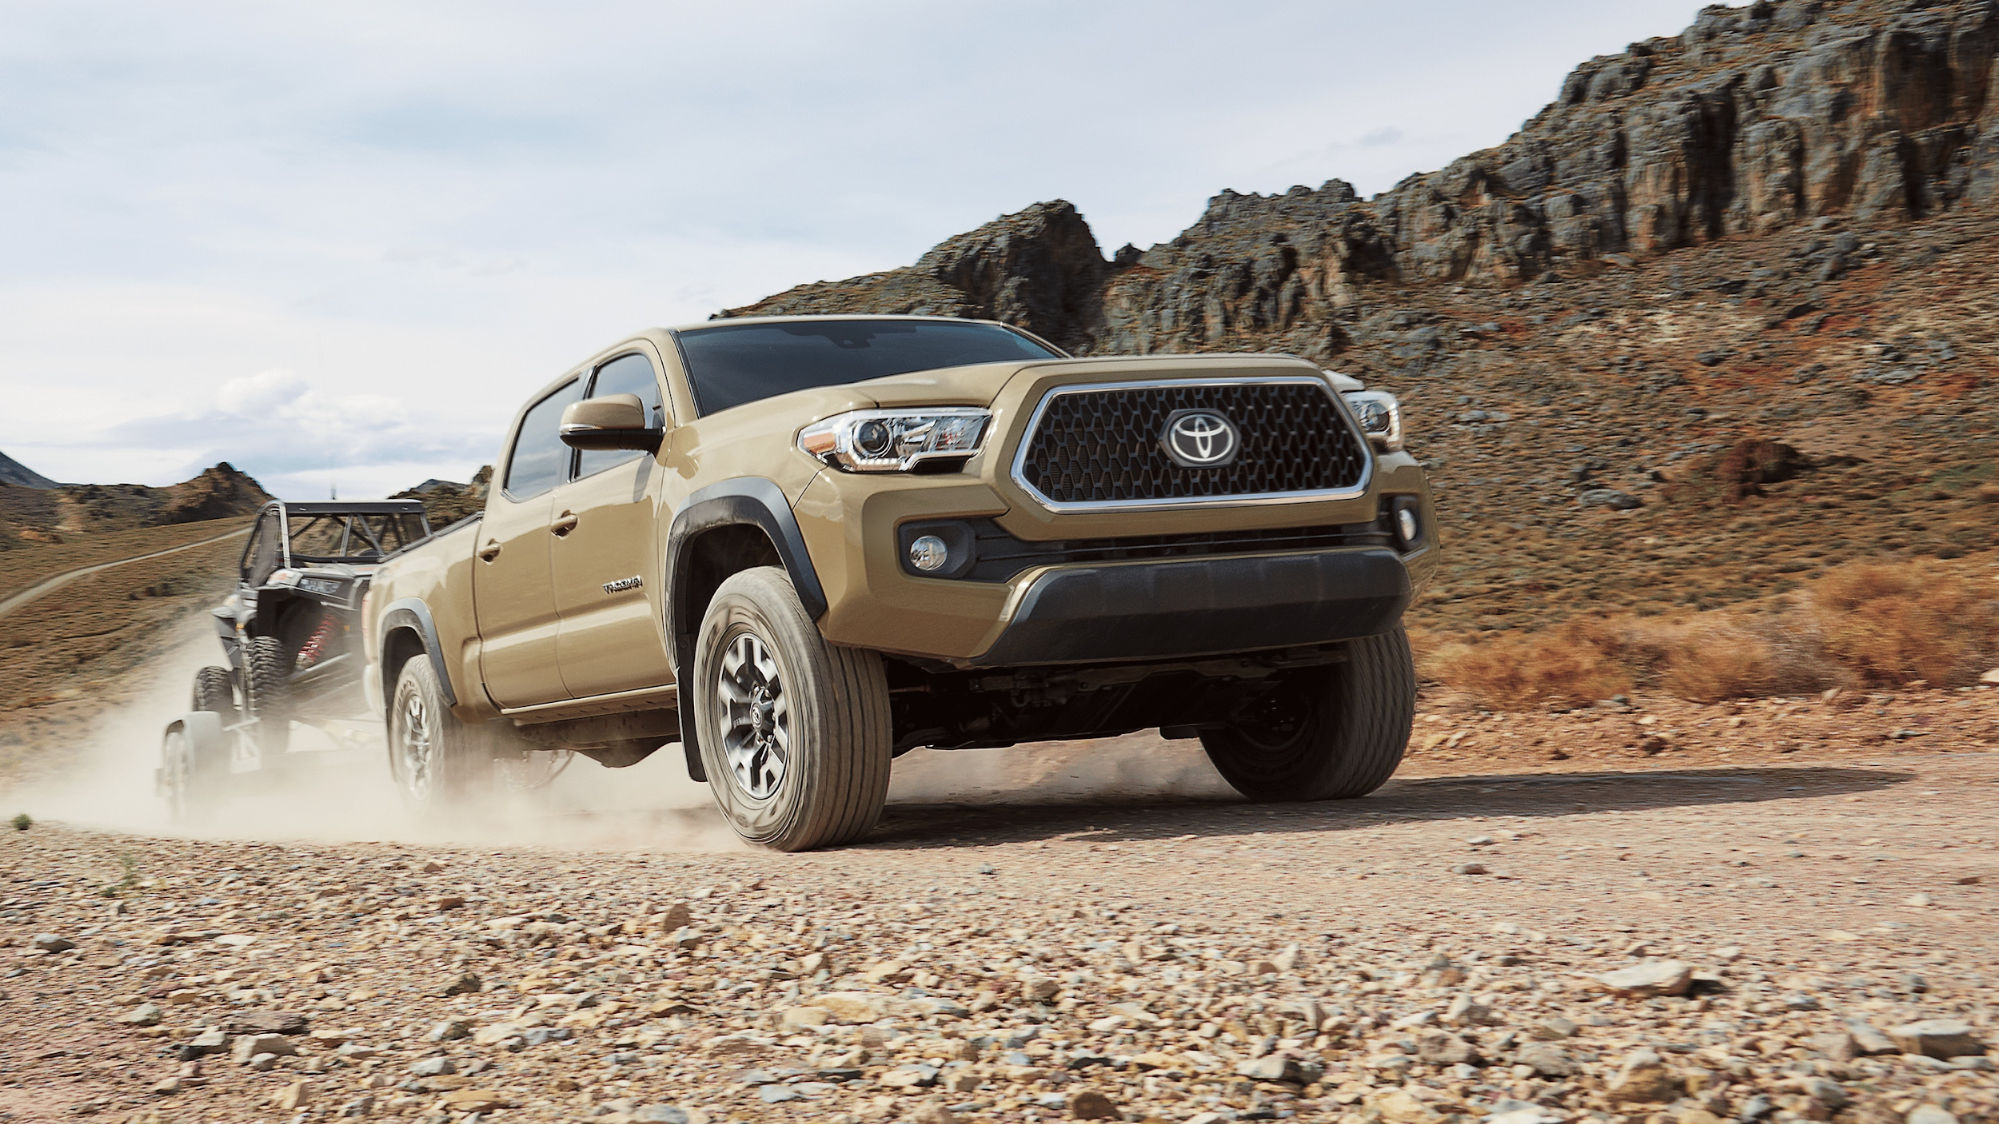 2019 Toyota Tacoma Pick Up Truck Review W Msrp Price Beechmont 2005 Fuel Filter Performance